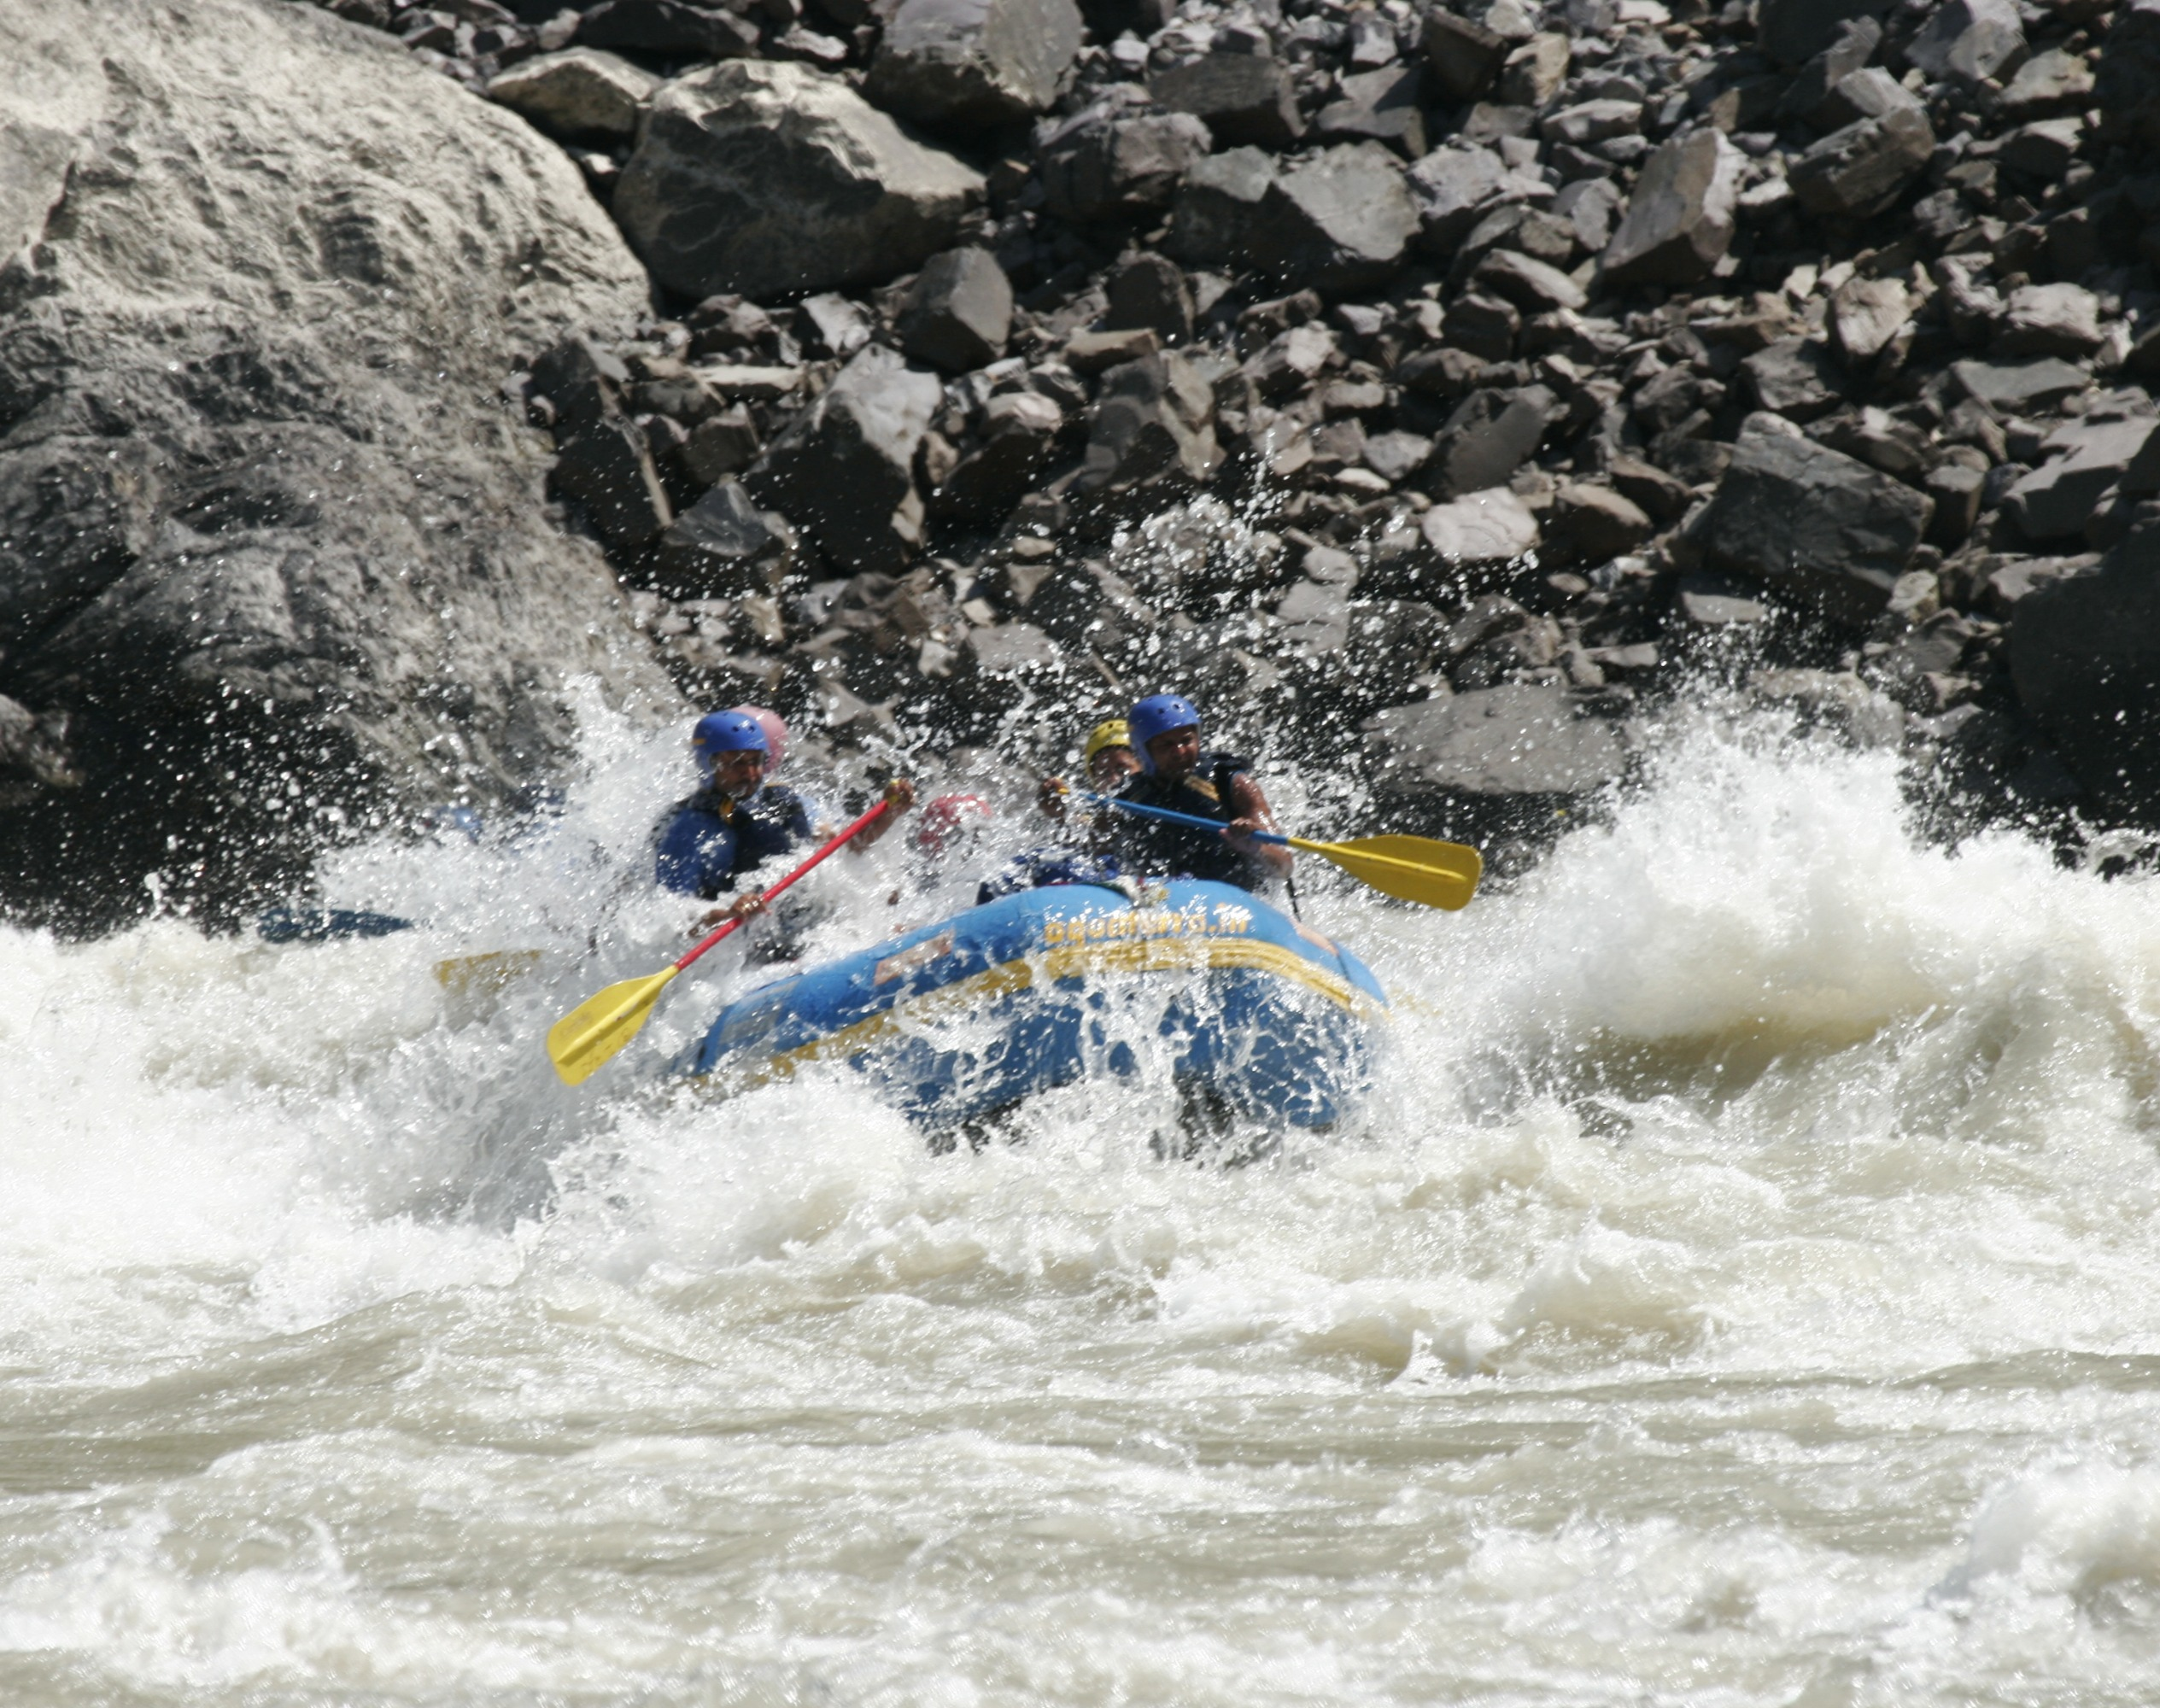 Whitewater rafting in Denali